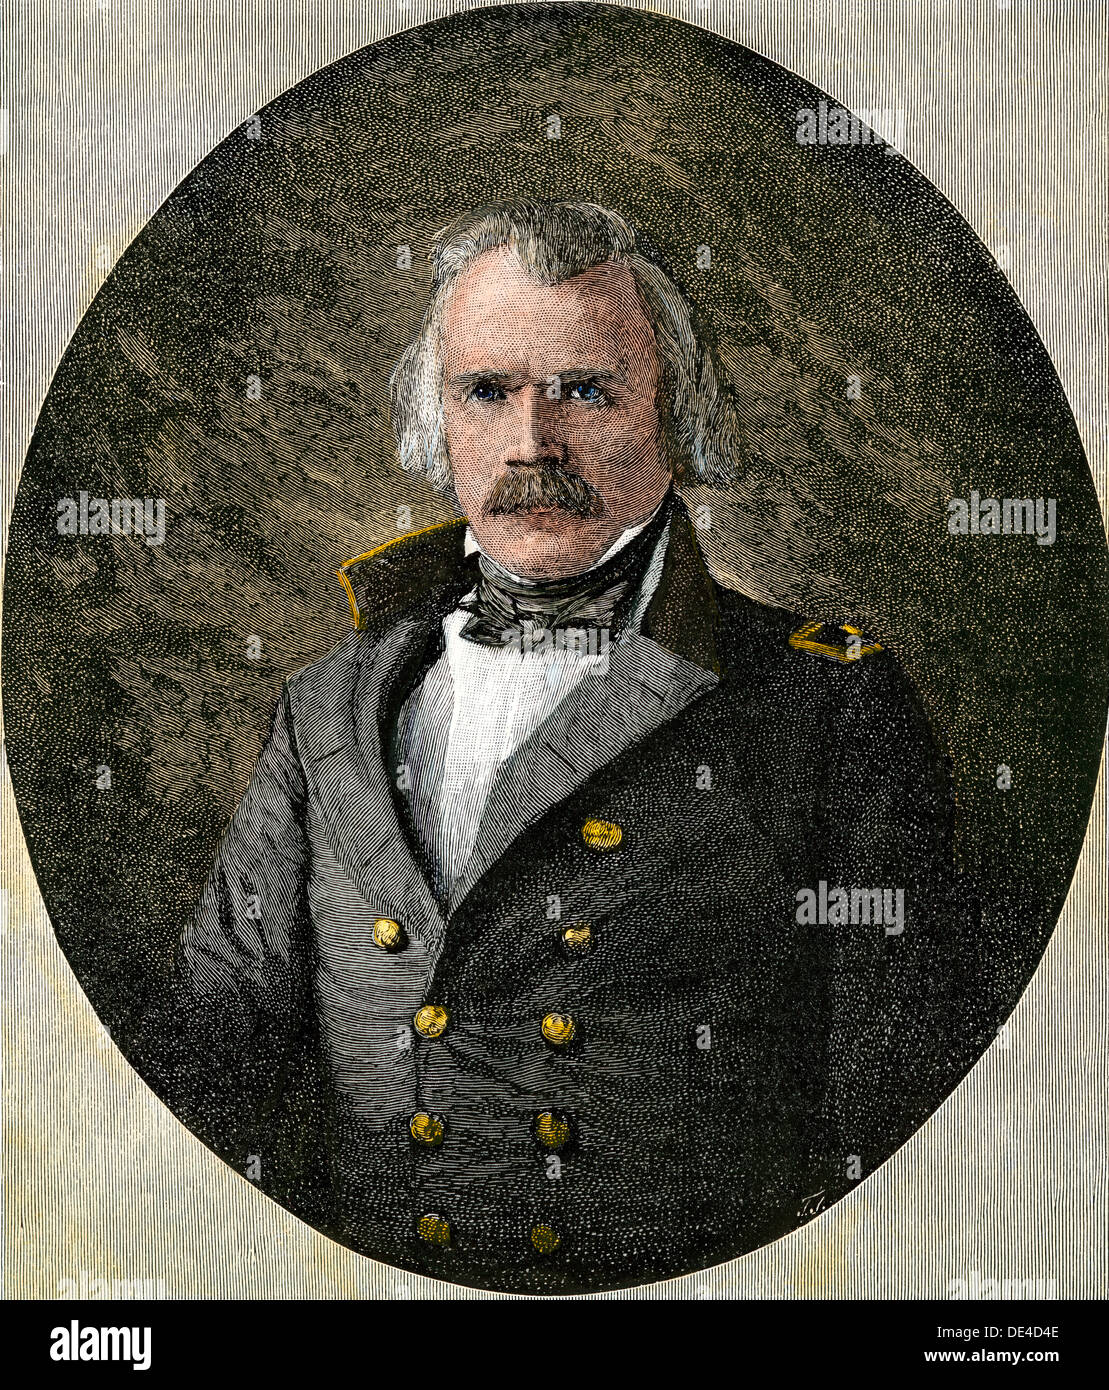 Confederate General Albert Sidney Johnston, at age 57. Hand-colored woodcut - Stock Image